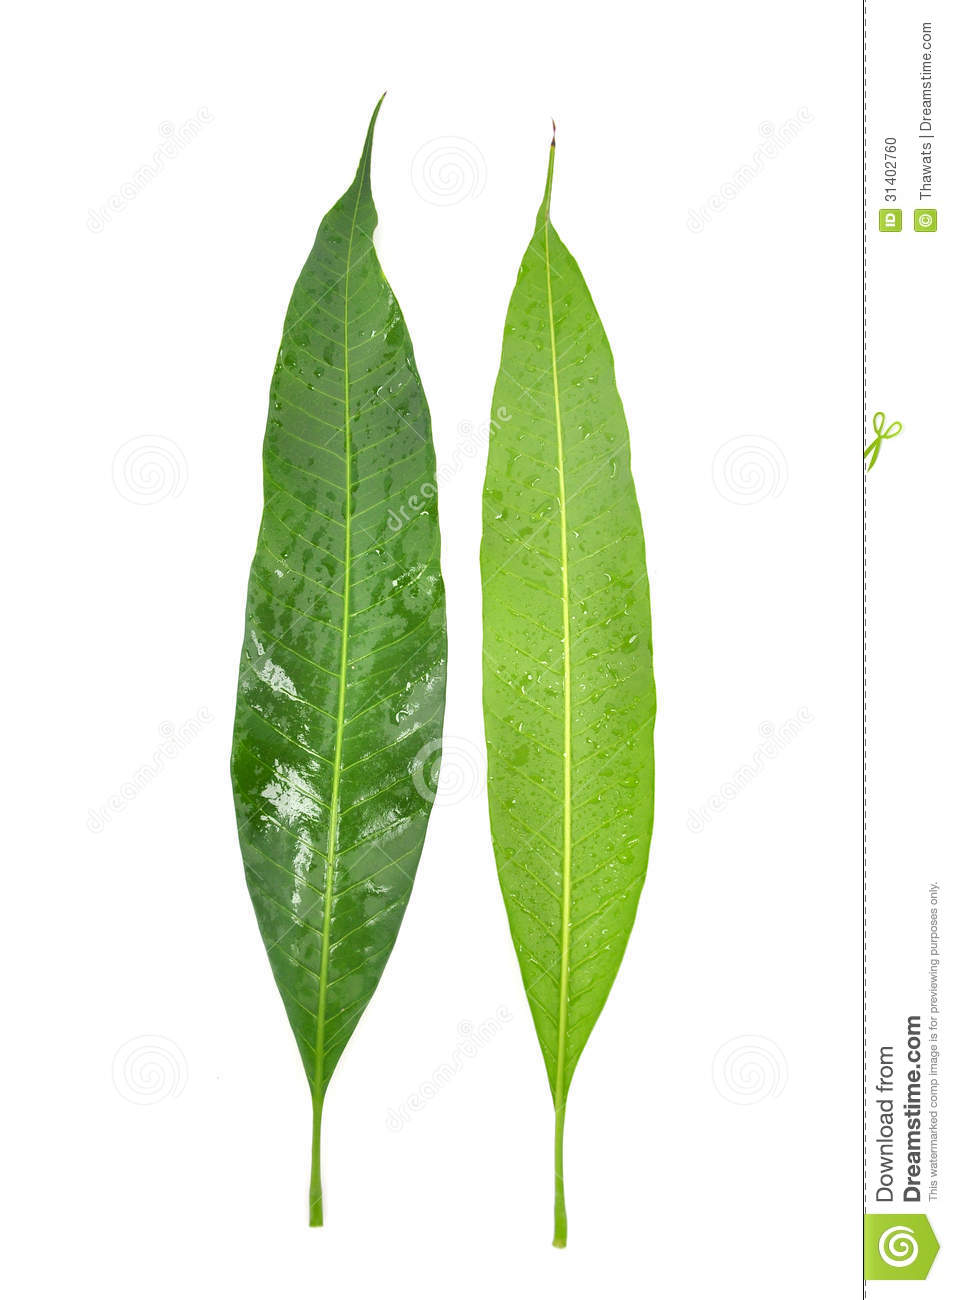 Mango leaf stock photo. Image of veins, fall, perspective